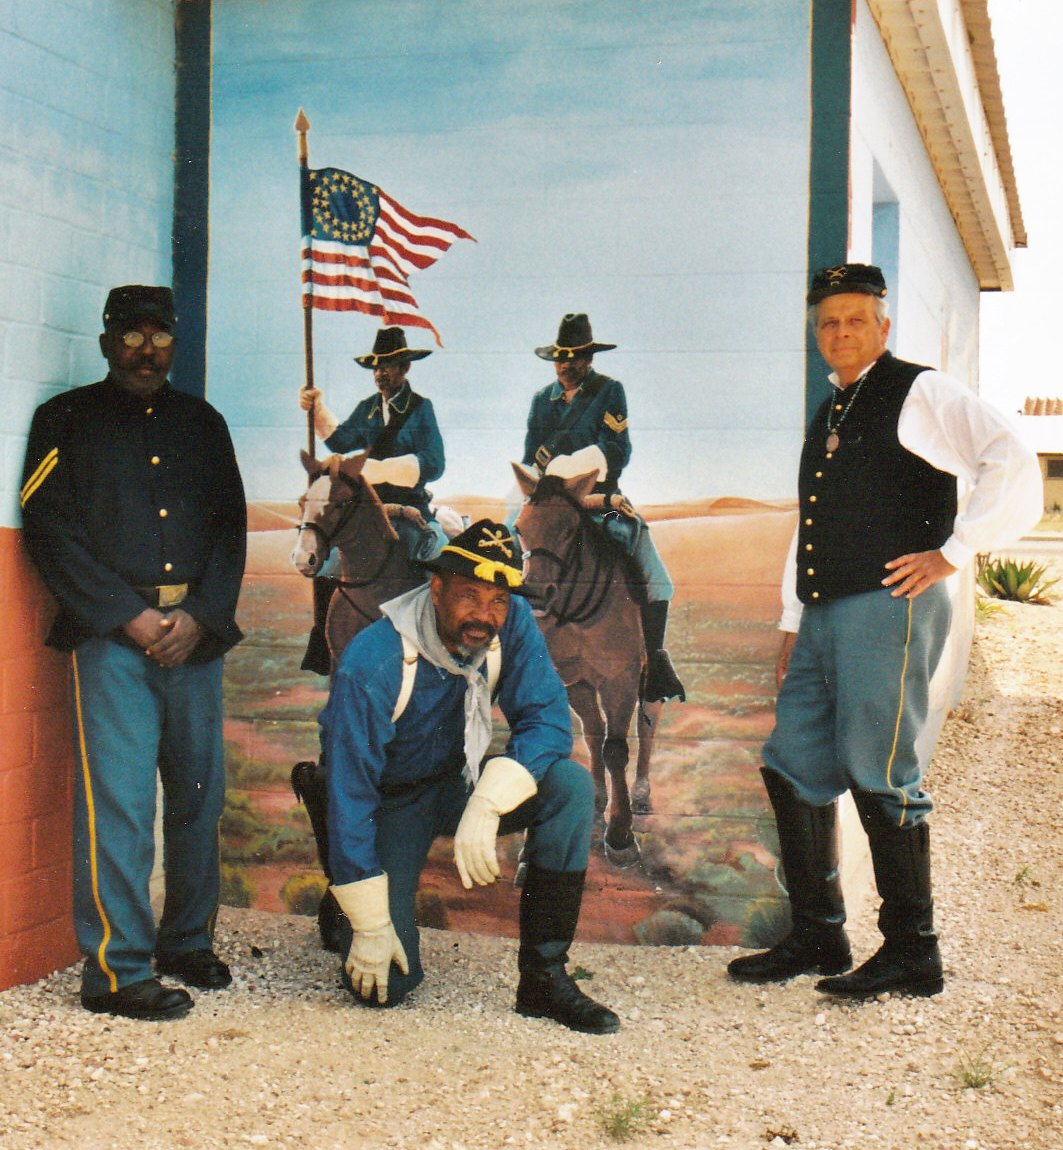 New Mexico Buffalo Soldiers pose in front of a Jal mural.